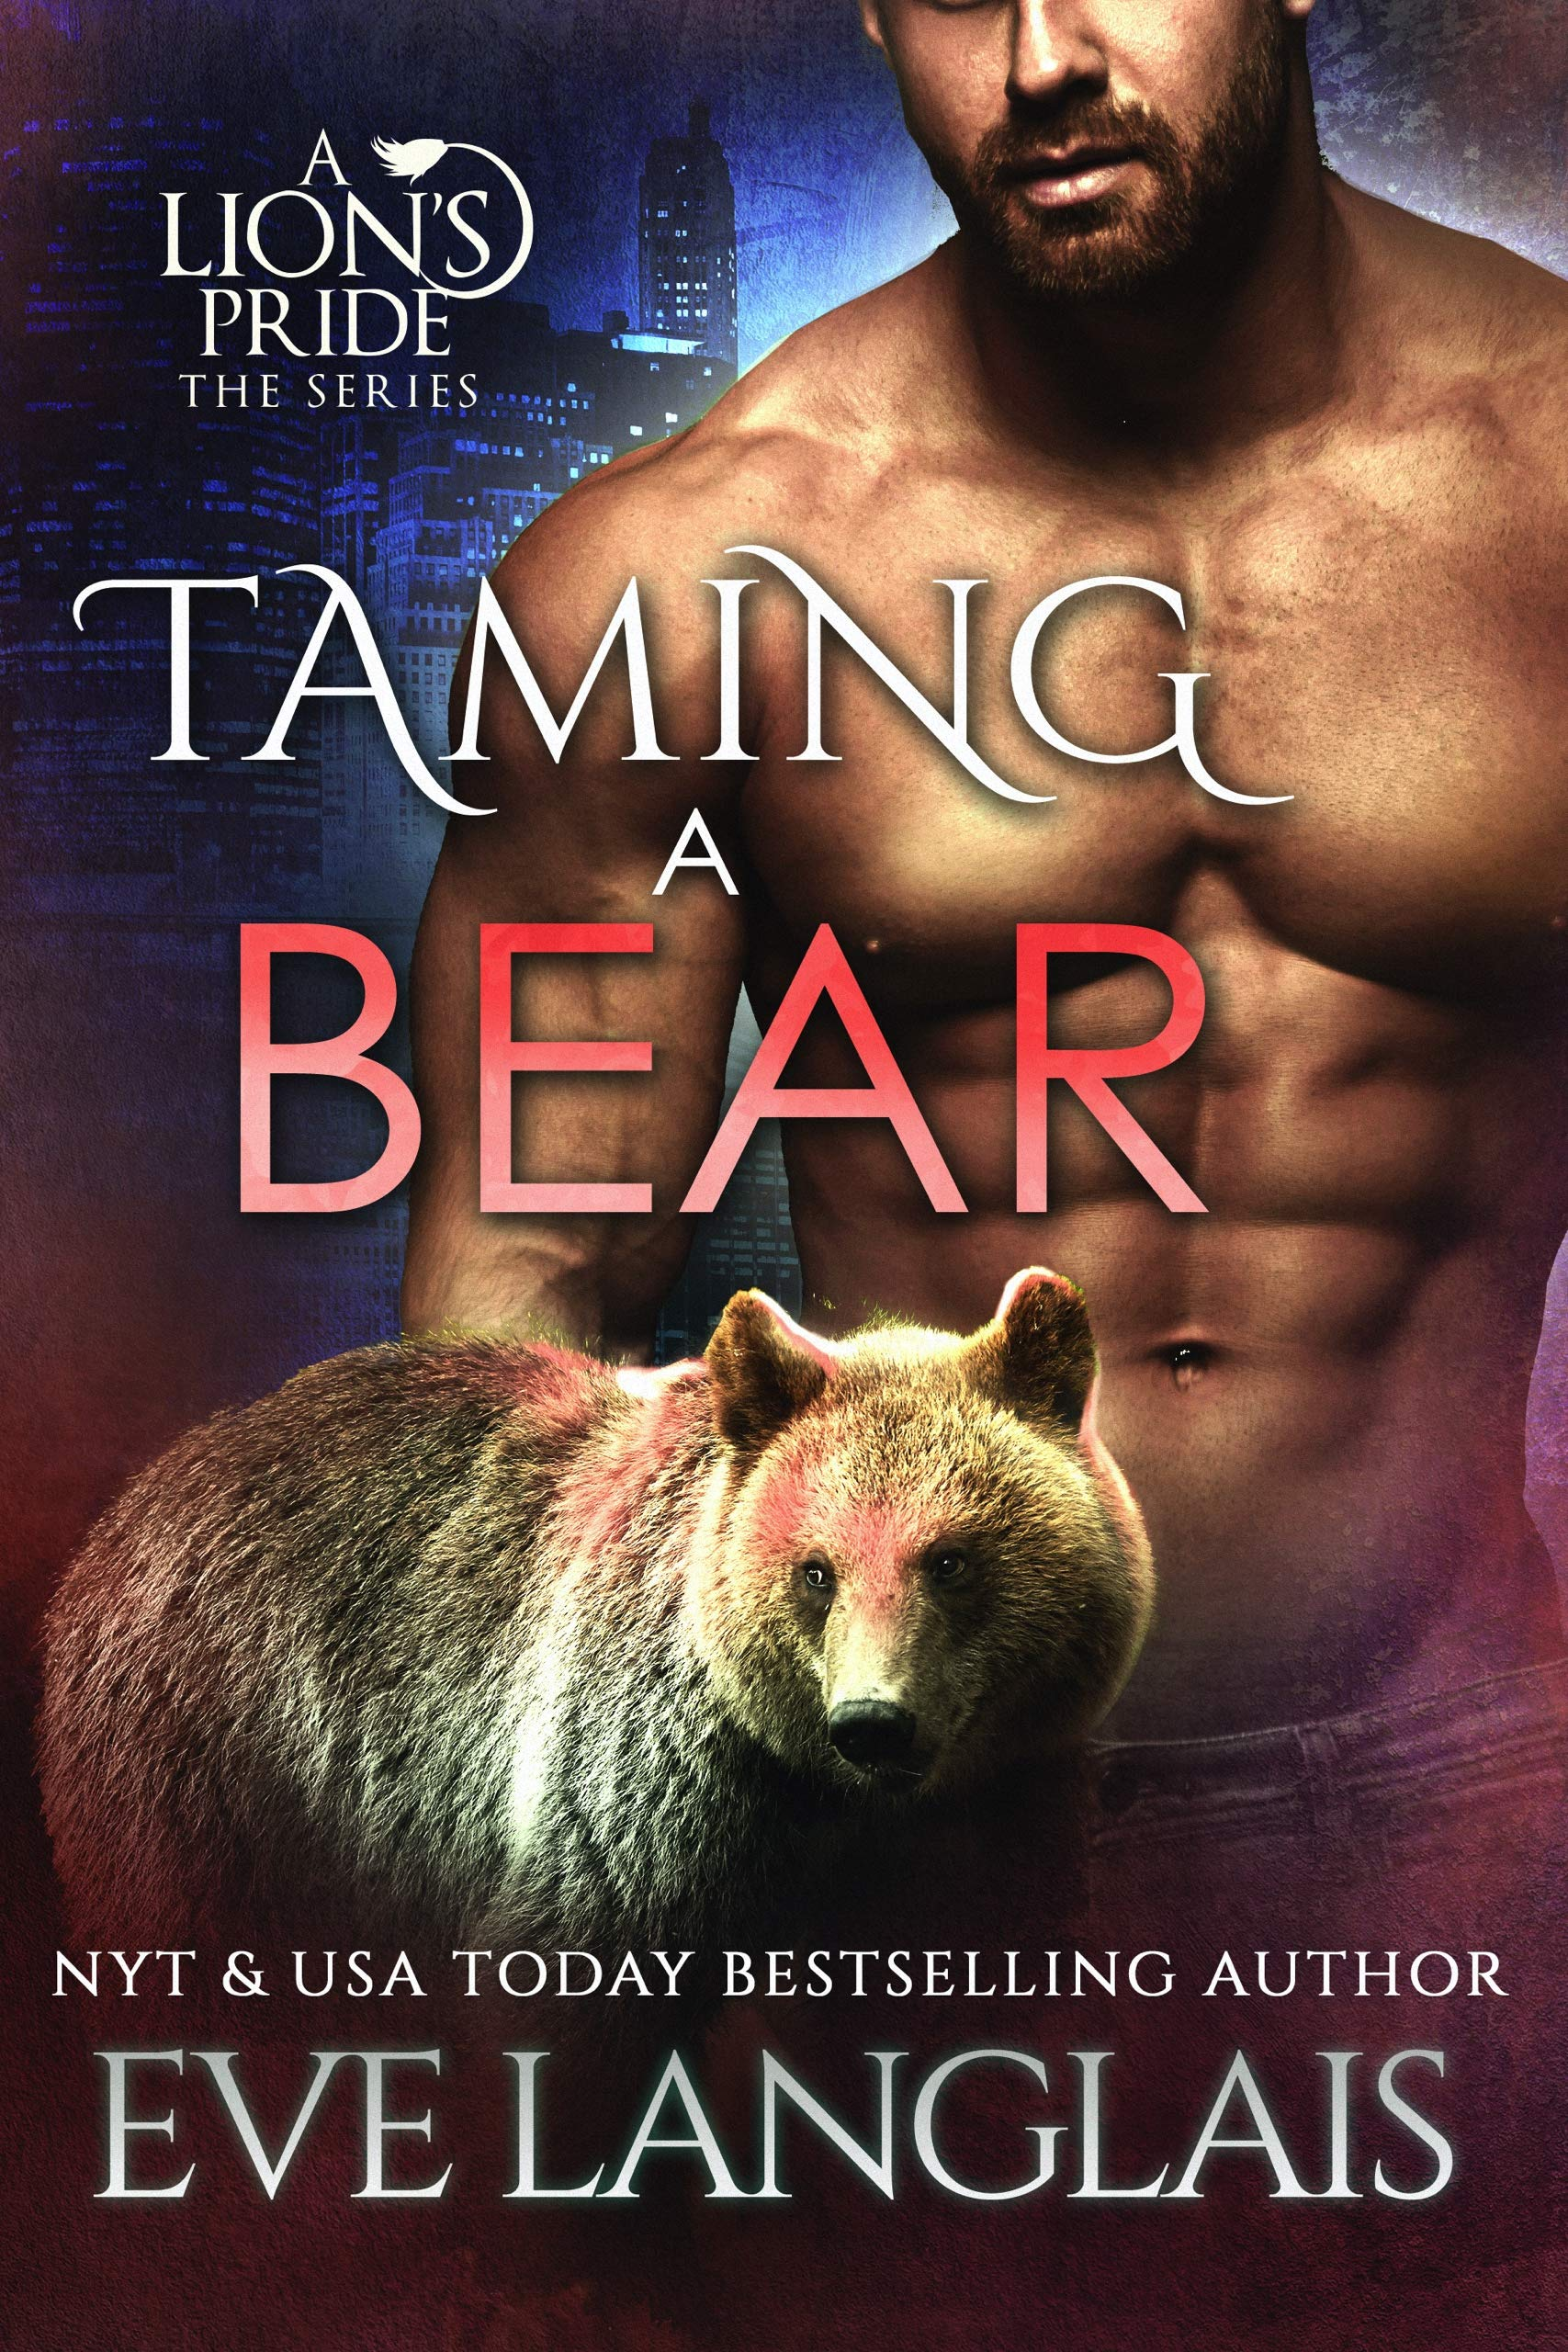 Taming a Bear (A Lion's Pride #11)